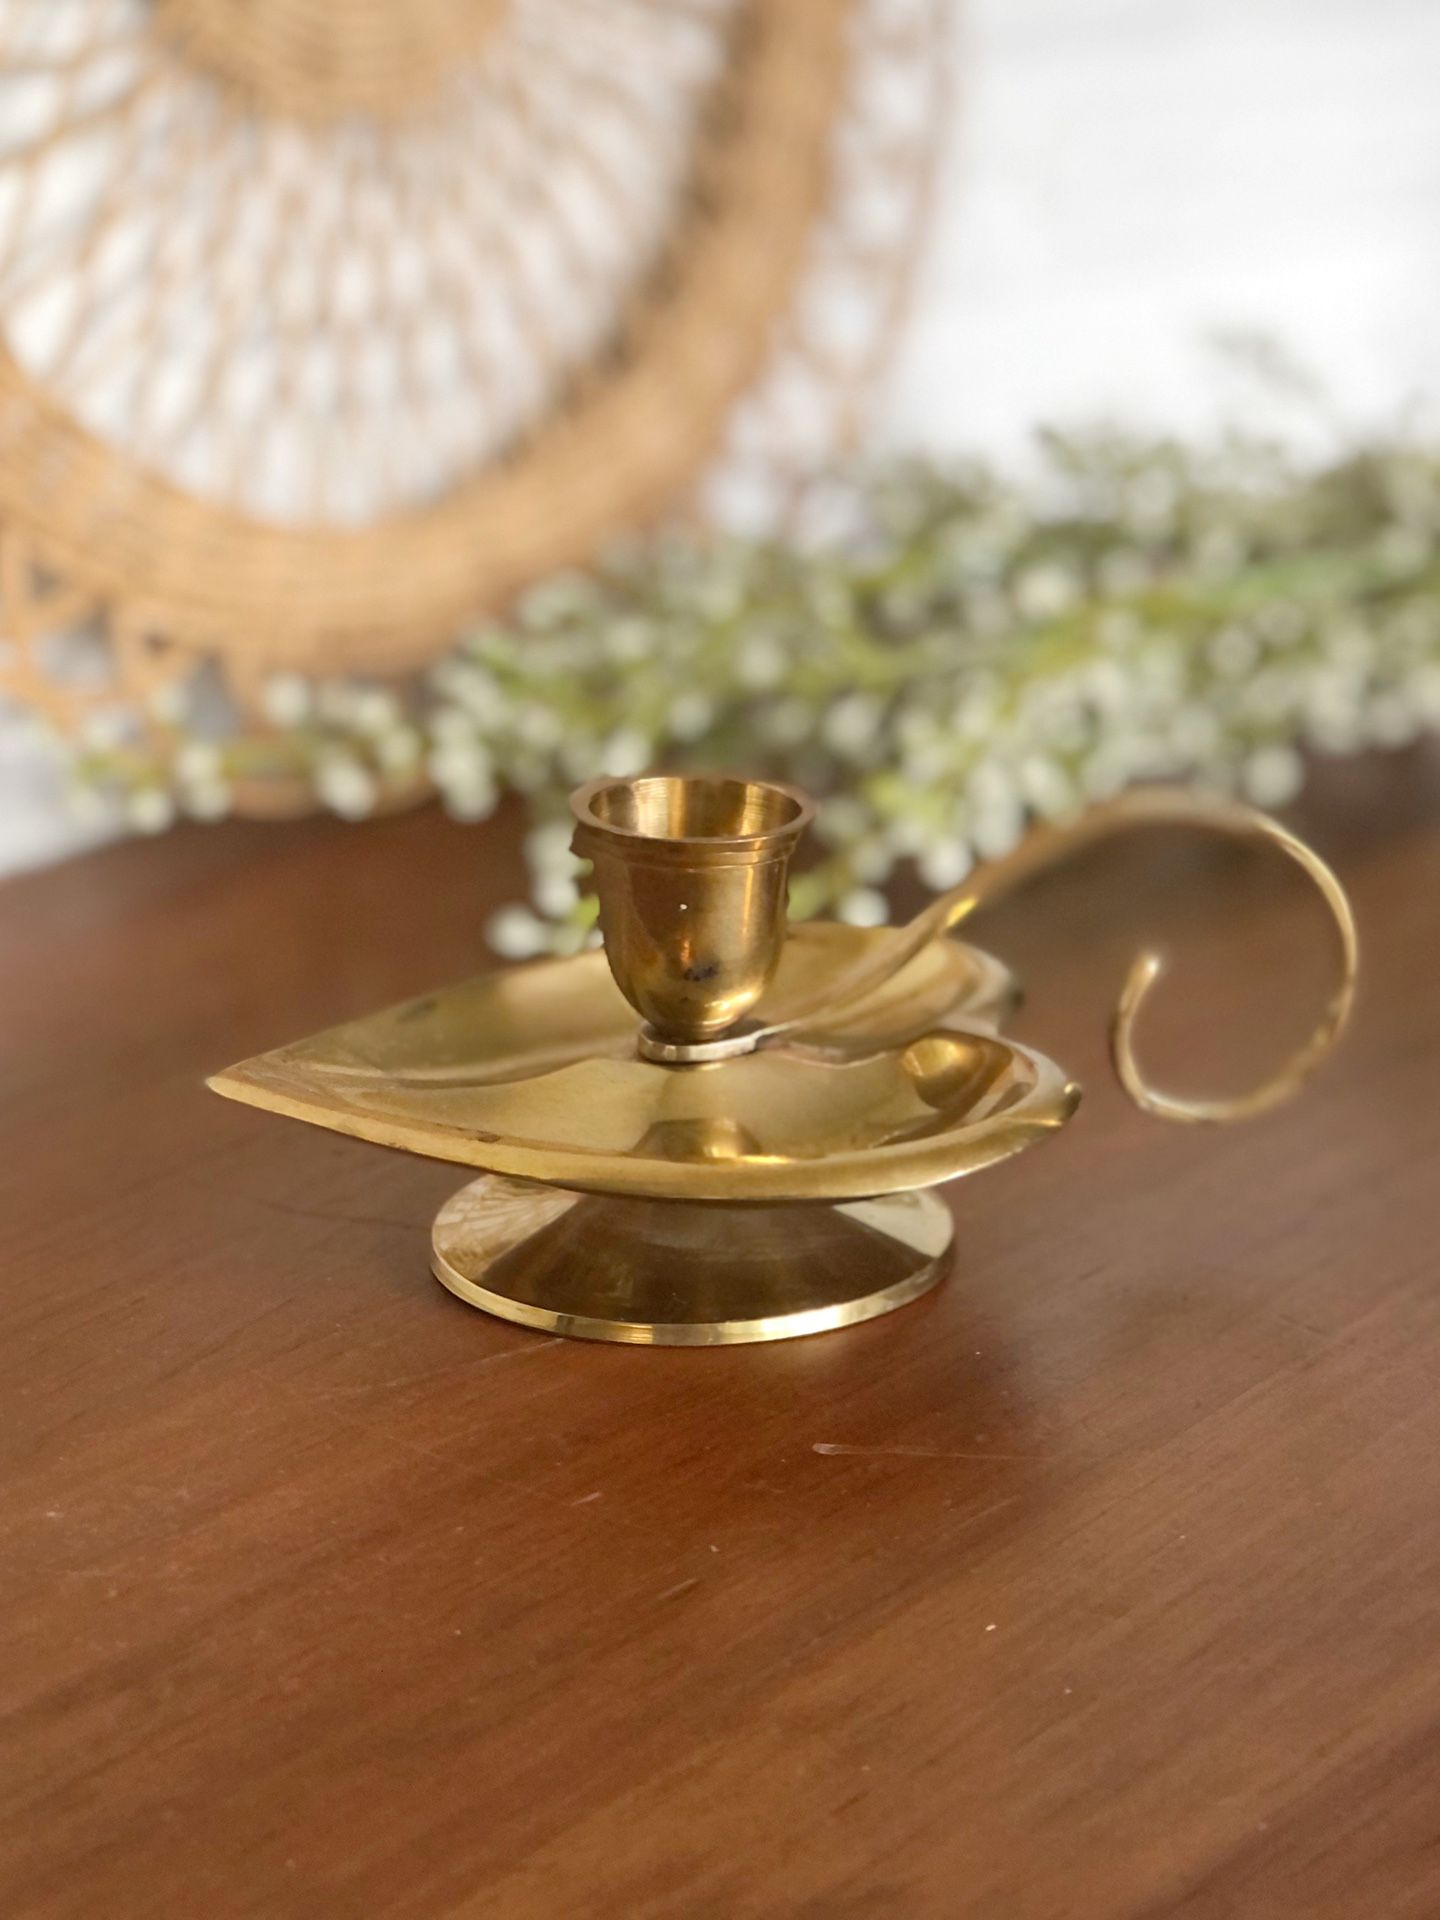 """Vintage brass heart candle holder with handle / 5.5""""x3.5"""" (including handle)"""